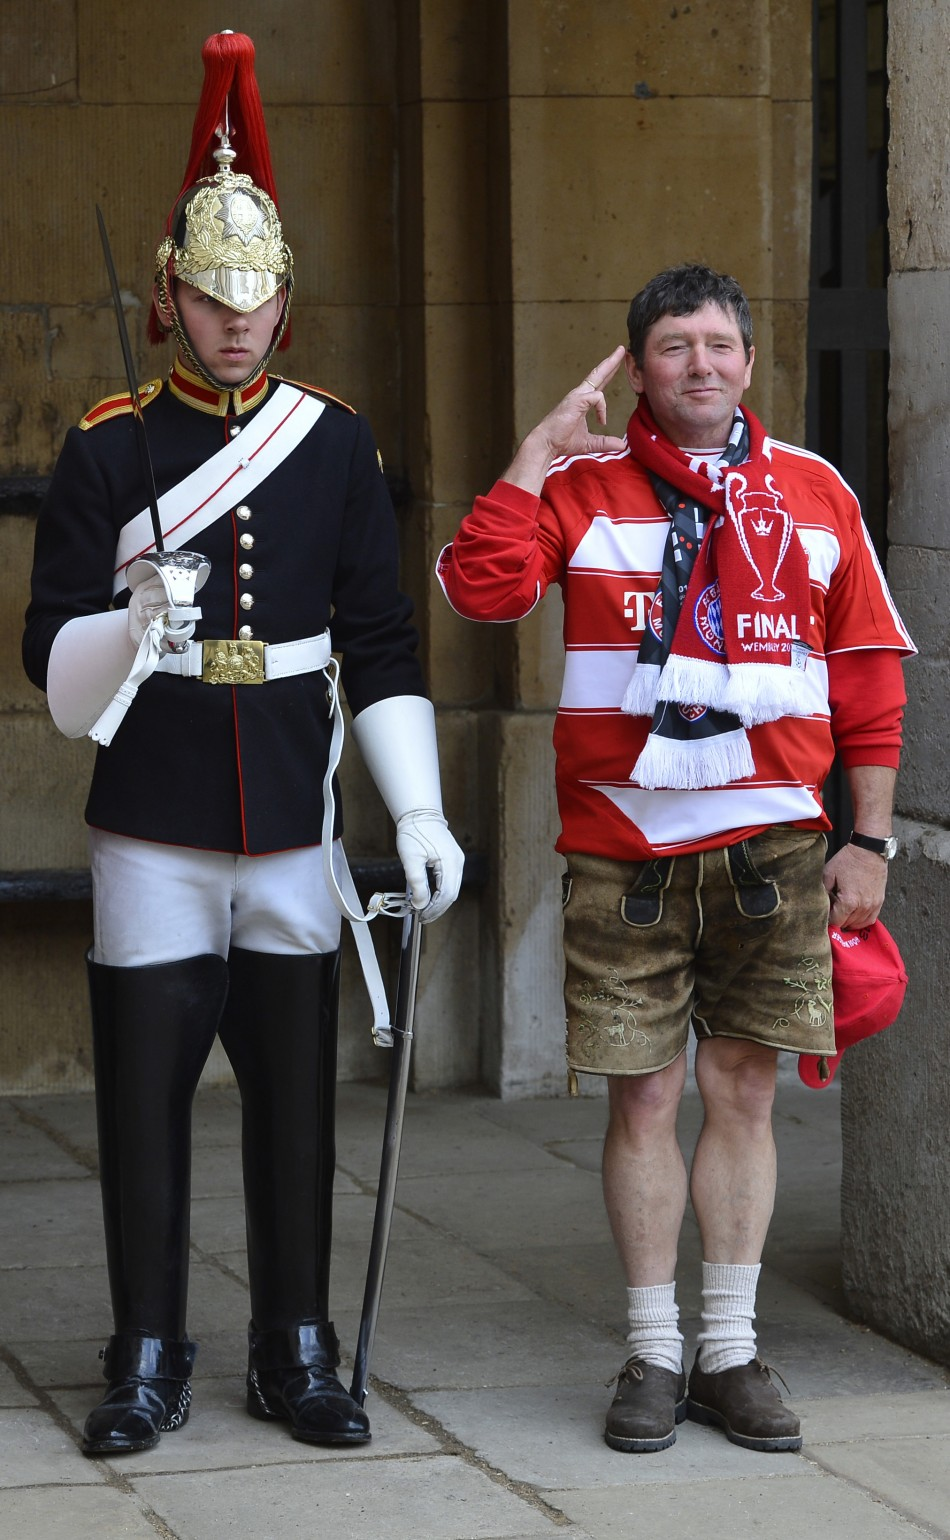 A Bayern Munich supporter poses next to a member of The Queen's Life Guard standing on duty outside of Horse Guards in central London